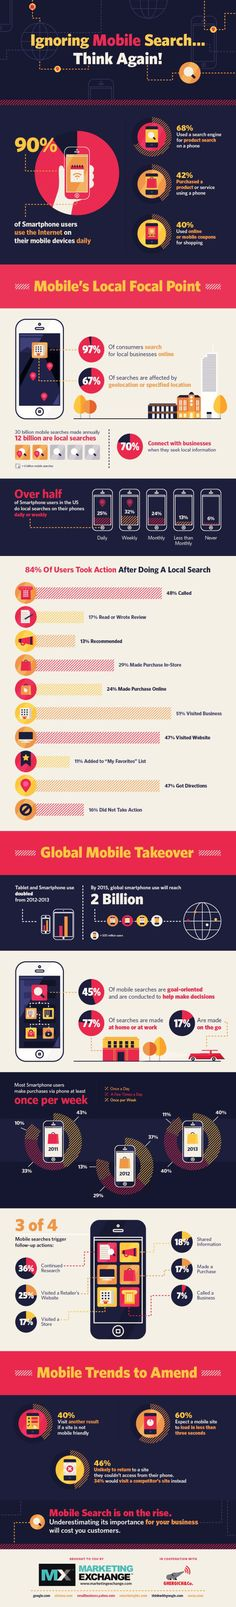 Ignoring Mobile search... Think again #infografia #infographic #marketing